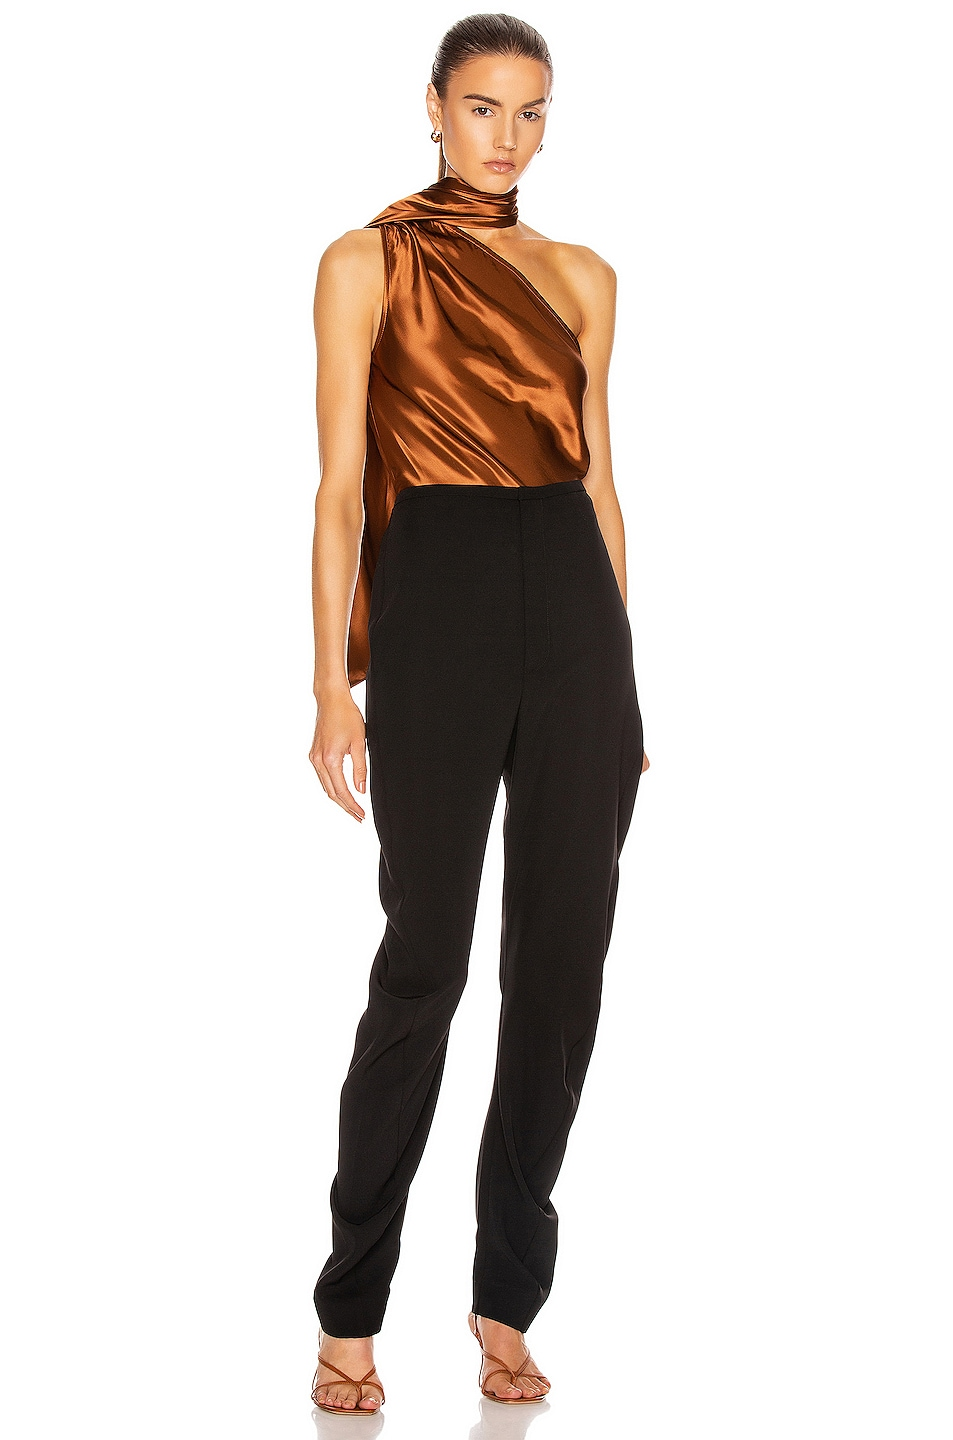 Image 6 of The Range Liquid Satin Convertible Scarf Neck Tank in Whiskey